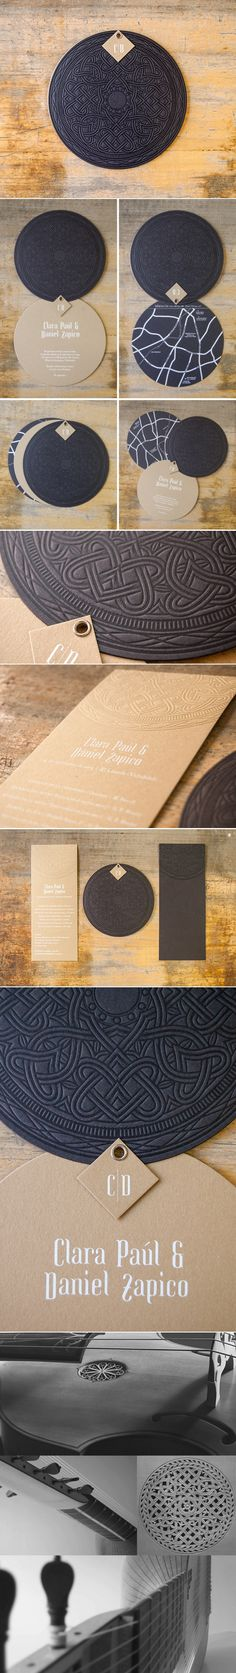 grahic design type paper